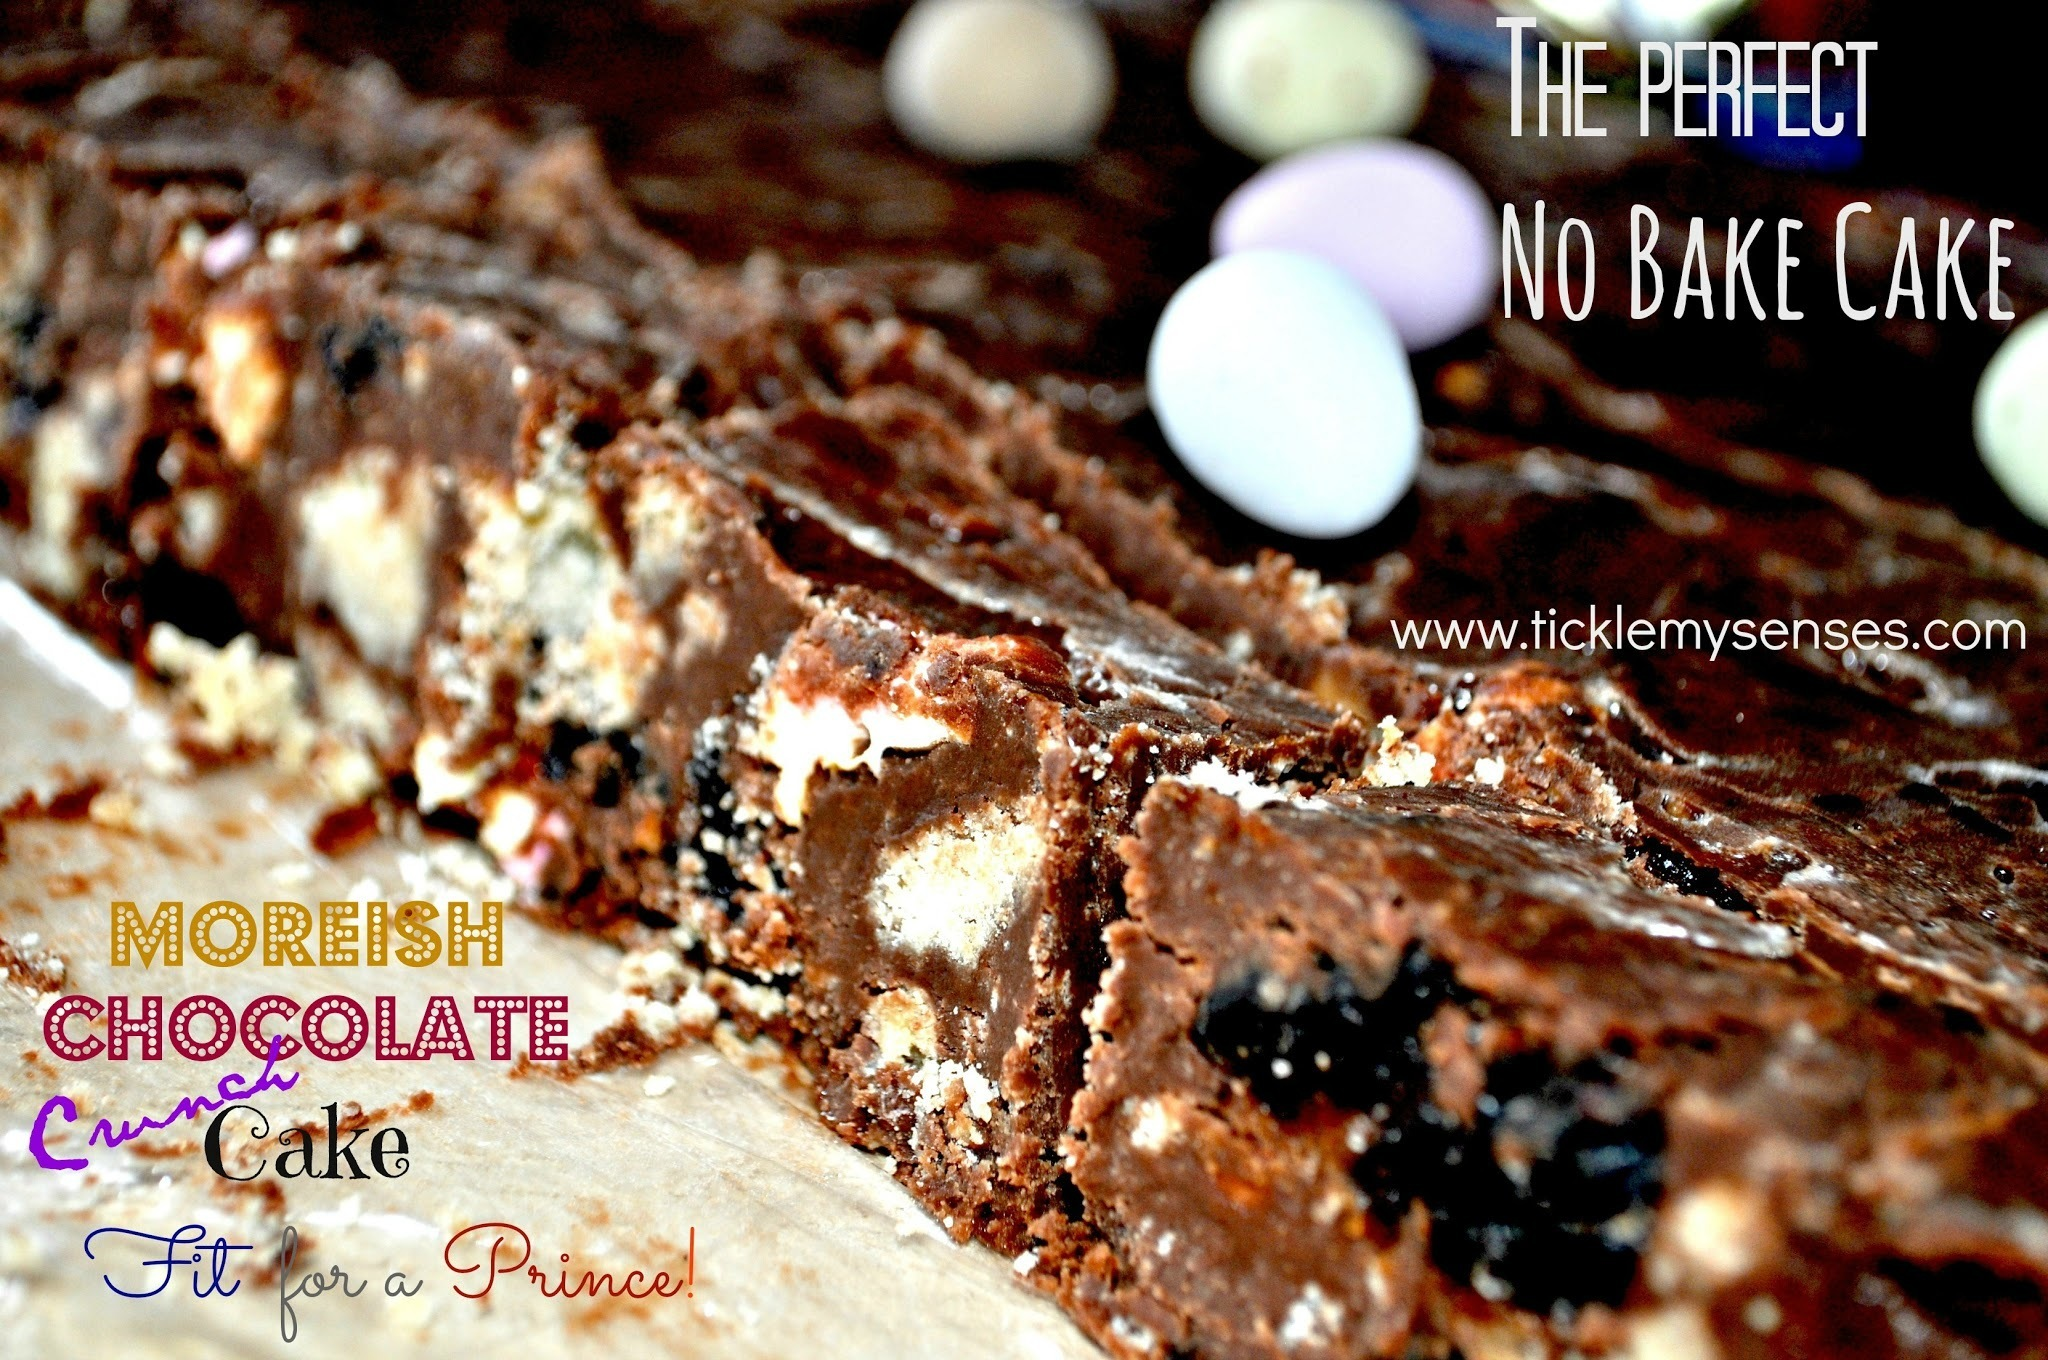 'No-Bake', 'Egg-Free' Chocolate Crunch Cake with Marshmallows, Prunes and Short Bread.